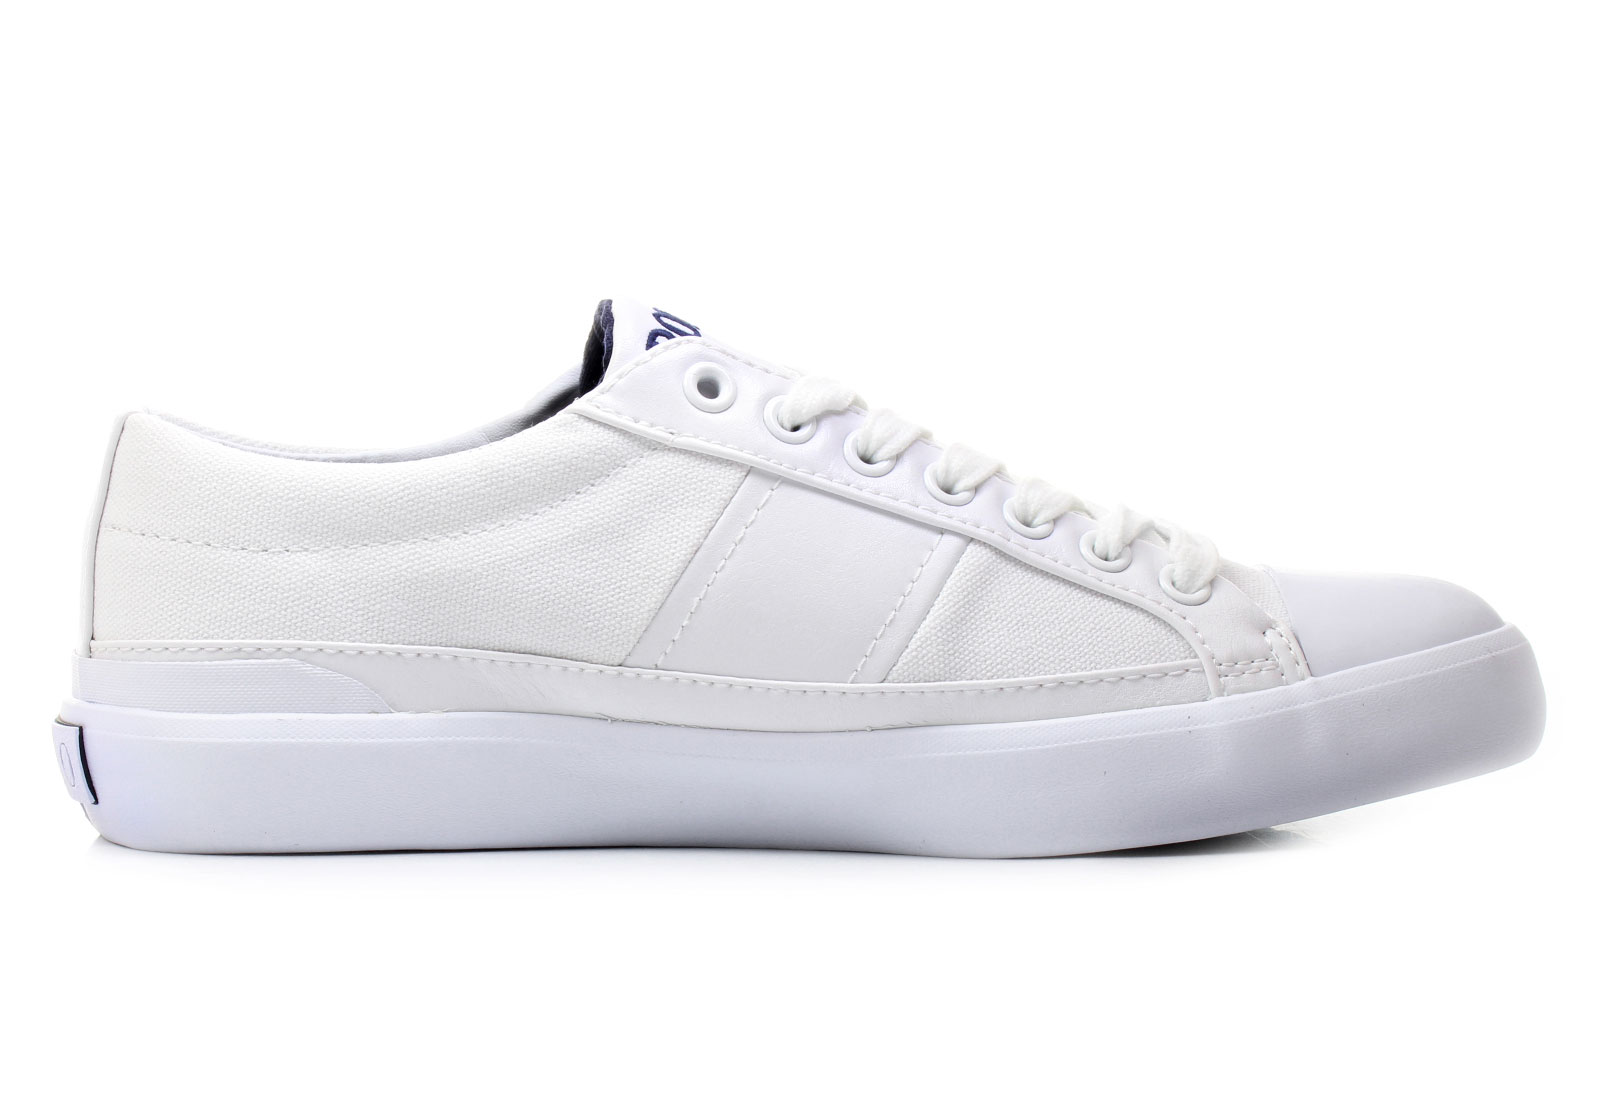 Polo Ralph Lauren Cipő - Churston-ne - 816566042004 - Office Shoes ... 24528479cf